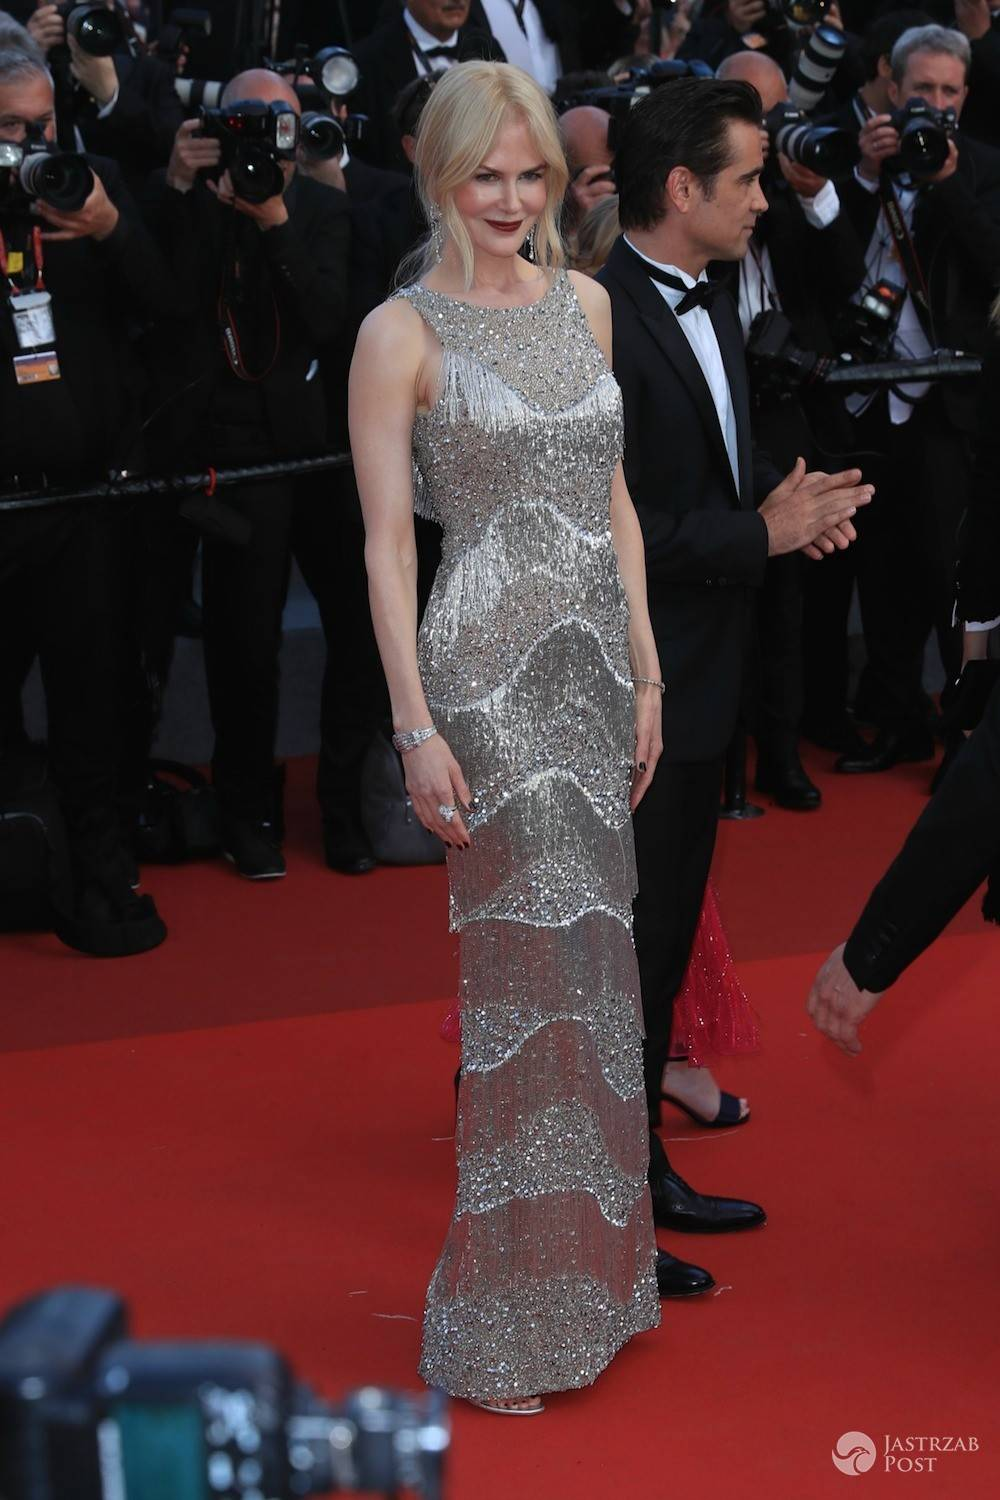 Nicole Kidman - Cannes 2017, The Beguiled